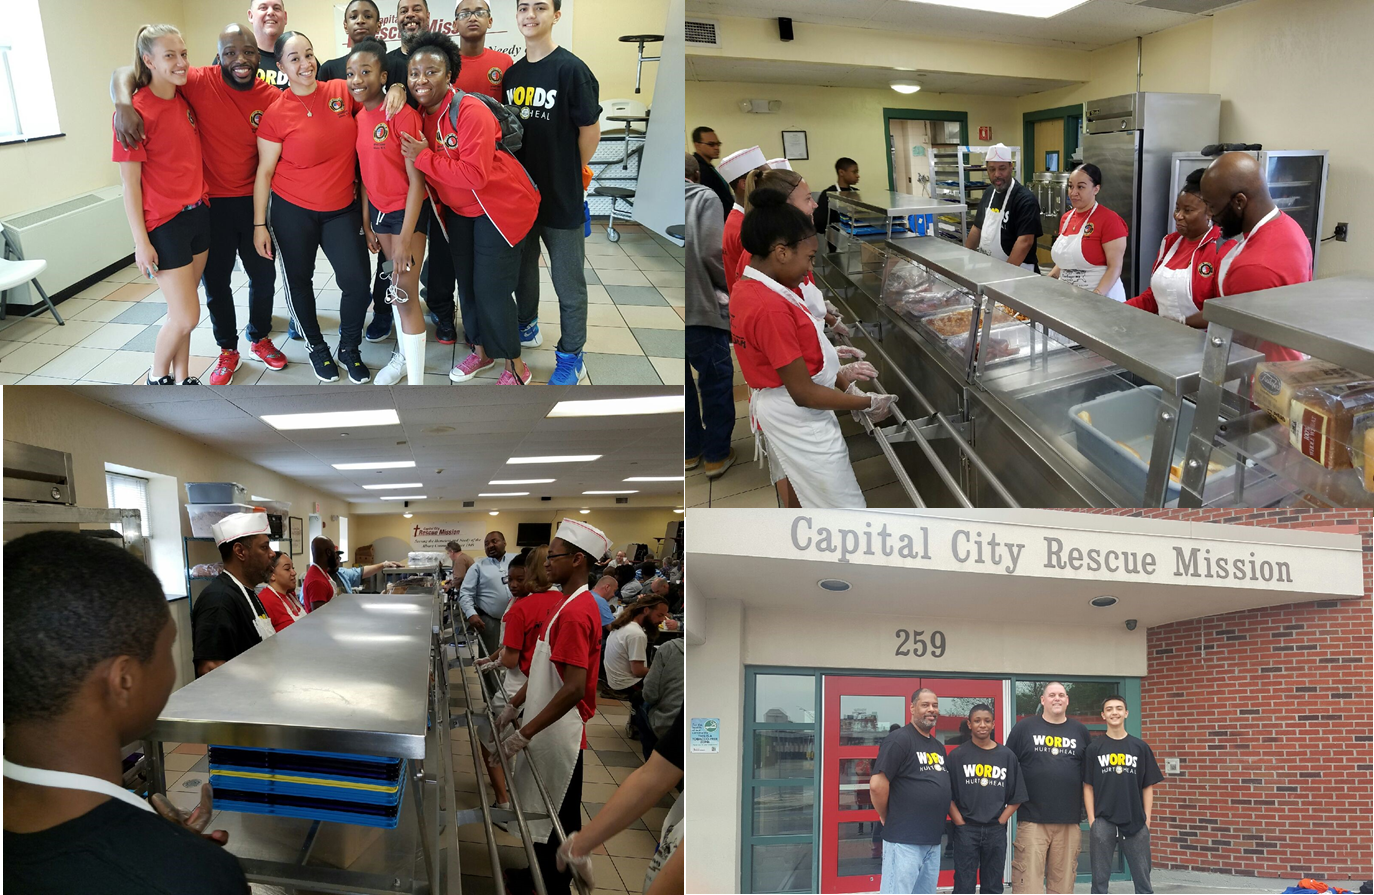 Last month a group of Blackbelt students from the American Institute of Japanese Karate School in Menands volunteered their time at the Capital City Rescue Mission in downtown Albany.  The group was one of the largest the Rescue Mission had seen all year, and was able to serve lunches to over 100 people and bag an additional 600 lunches! These young people were excited to give back to their community and are eager to continuing their volunteer work!